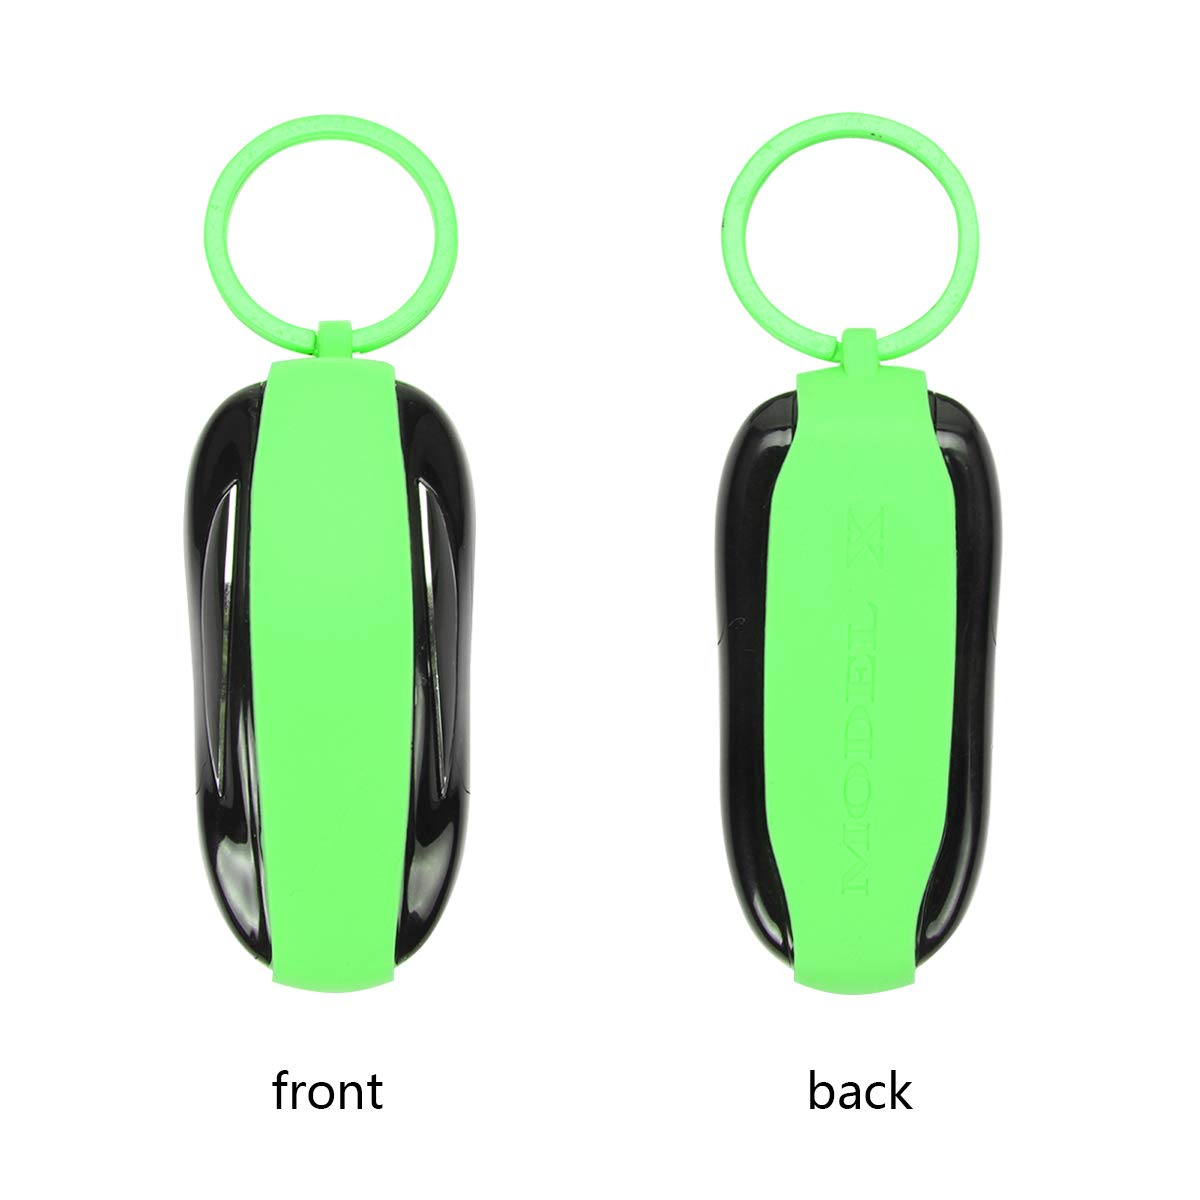 Black, Model S DeCuLo Key Fob Cover for Tesla Model S Silicone Car Key Cover Shell Protector Case Holder for Tesla S Accessories